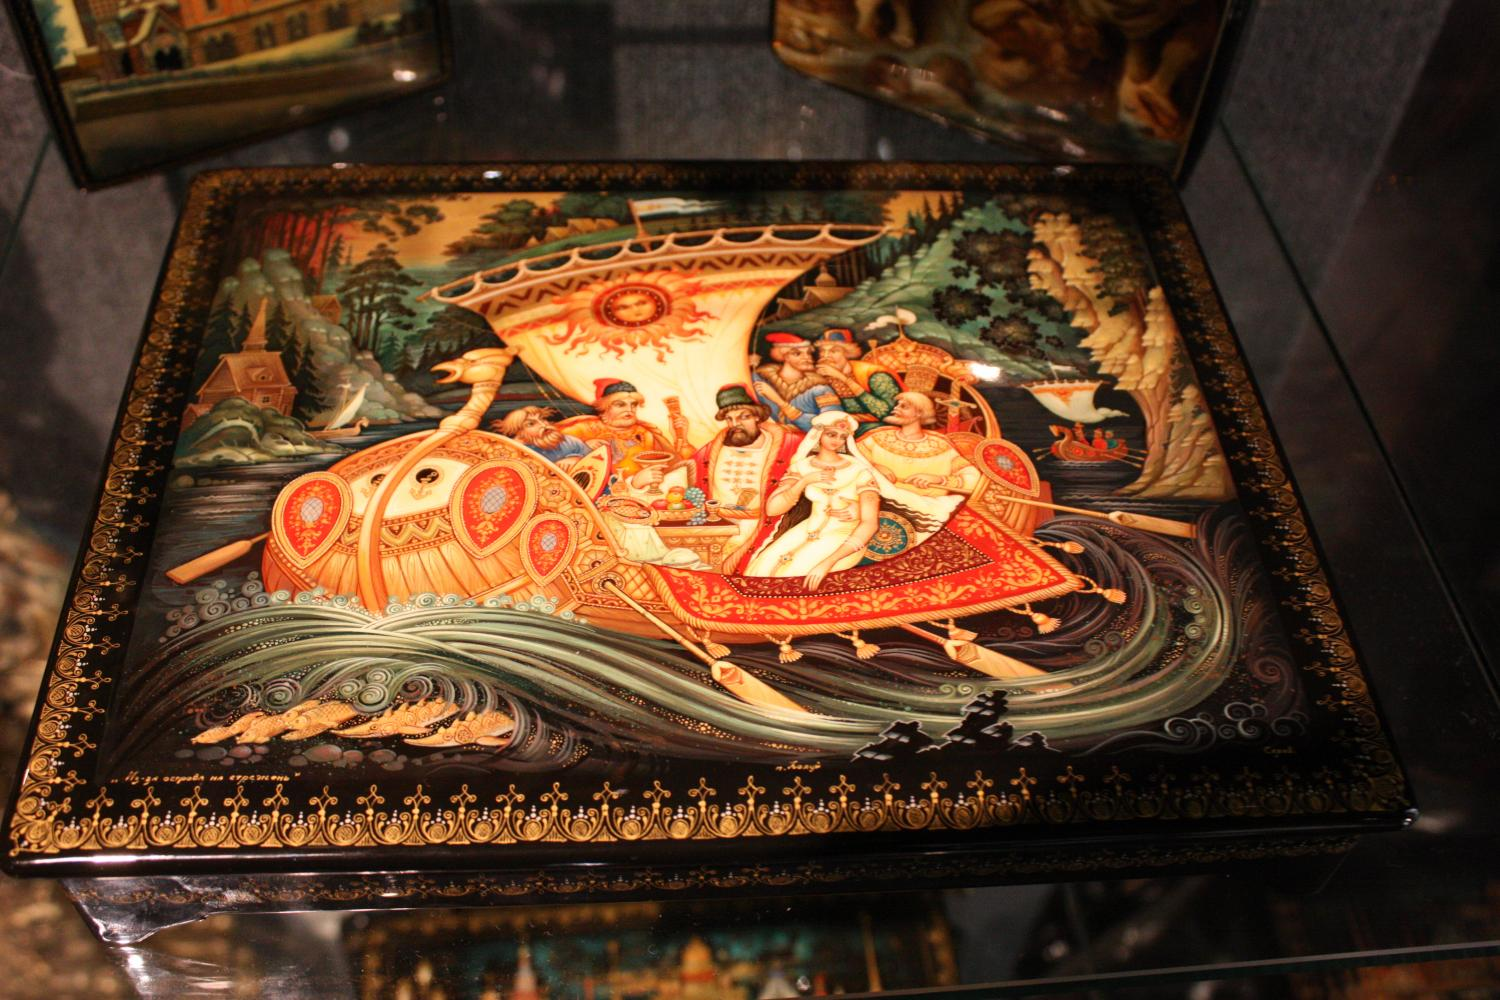 Russian lacquer art, russische Lackminiaturen, St. Petersburg, 2009, magazin